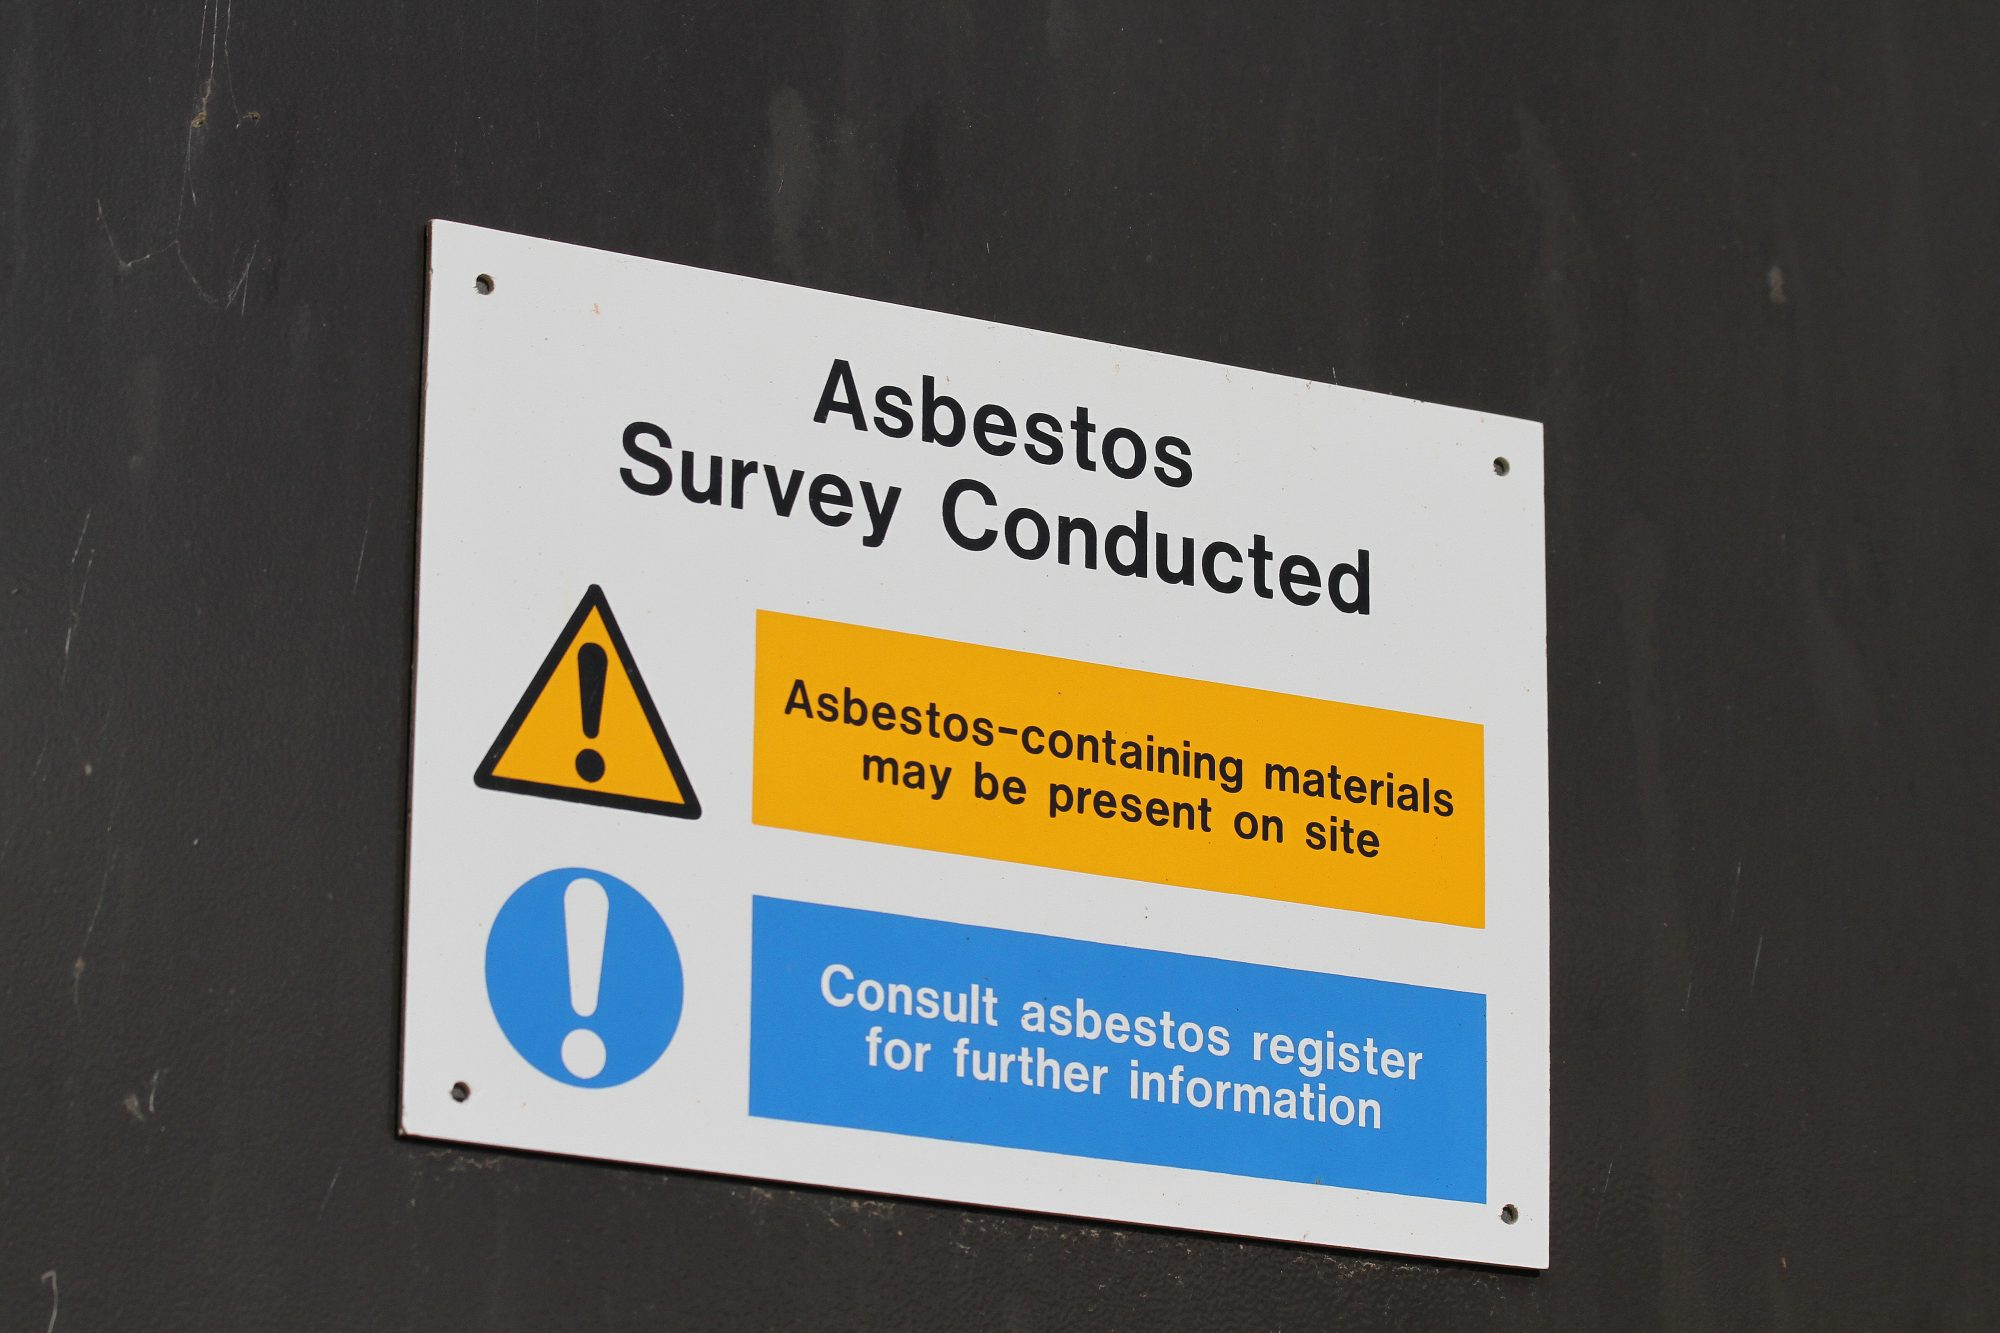 Contractor fined for asbestos failings after gas explosion